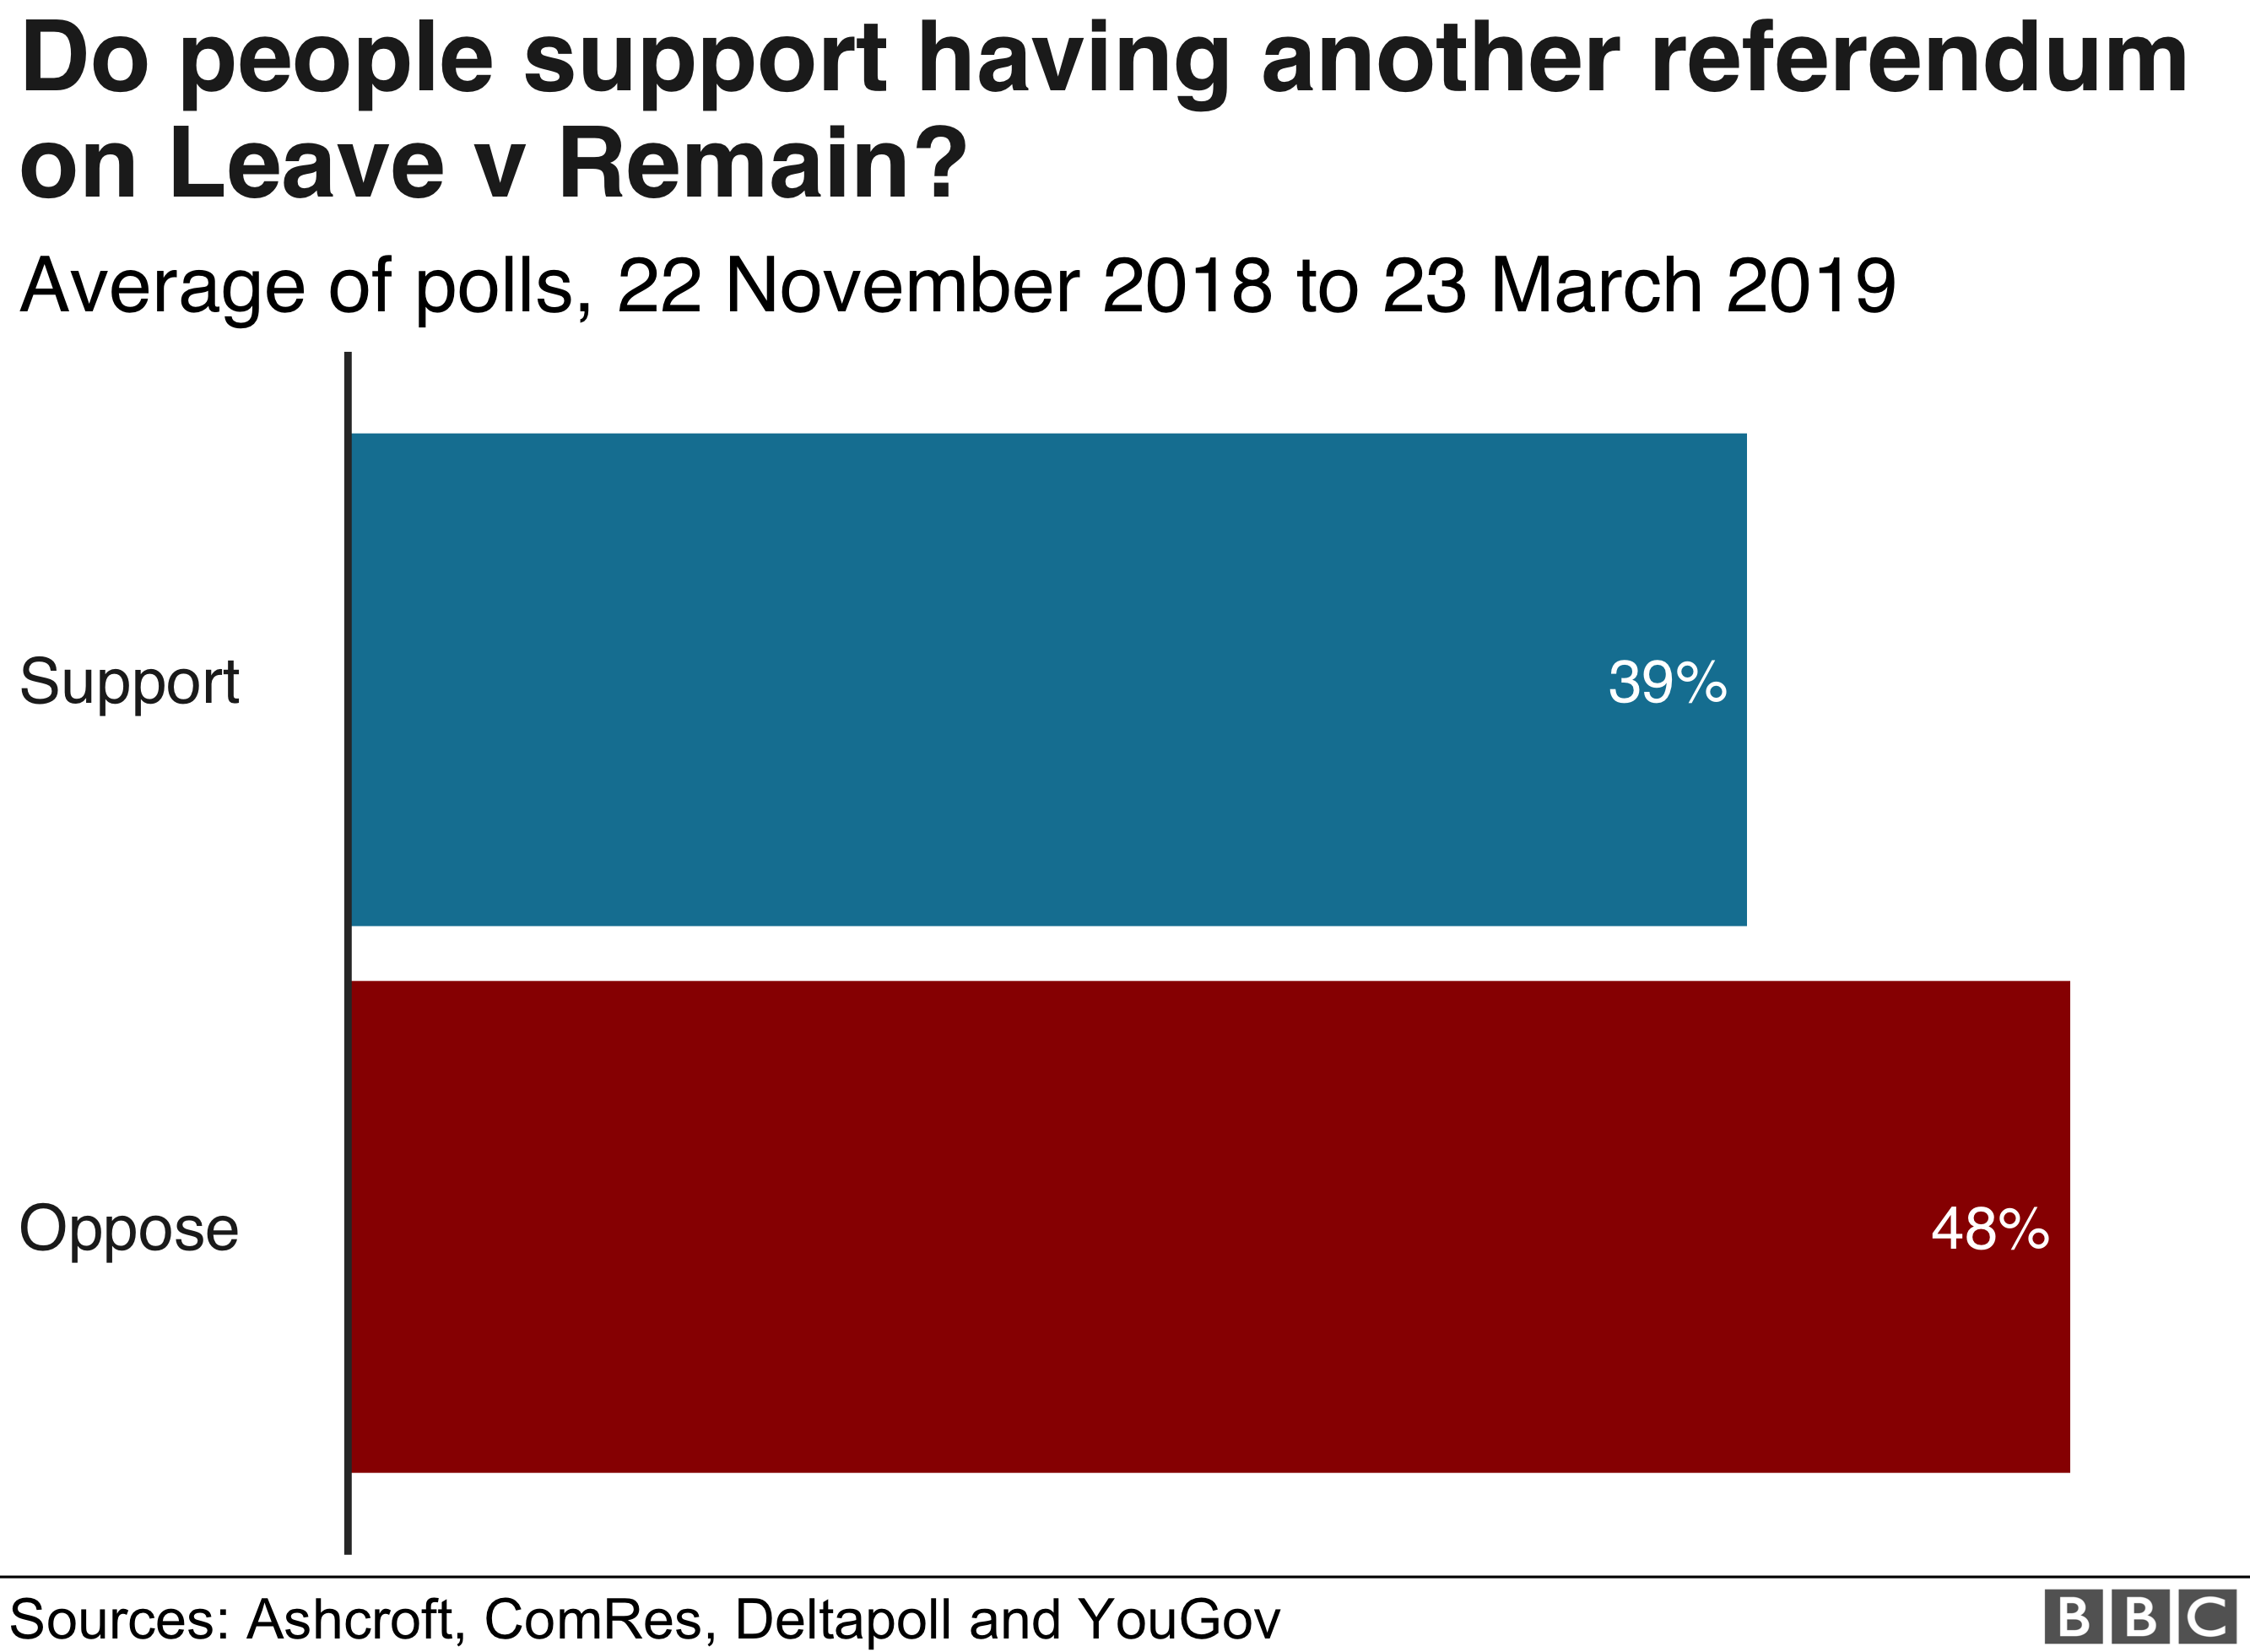 Chart showing support for having another referendum on Leave v Remain